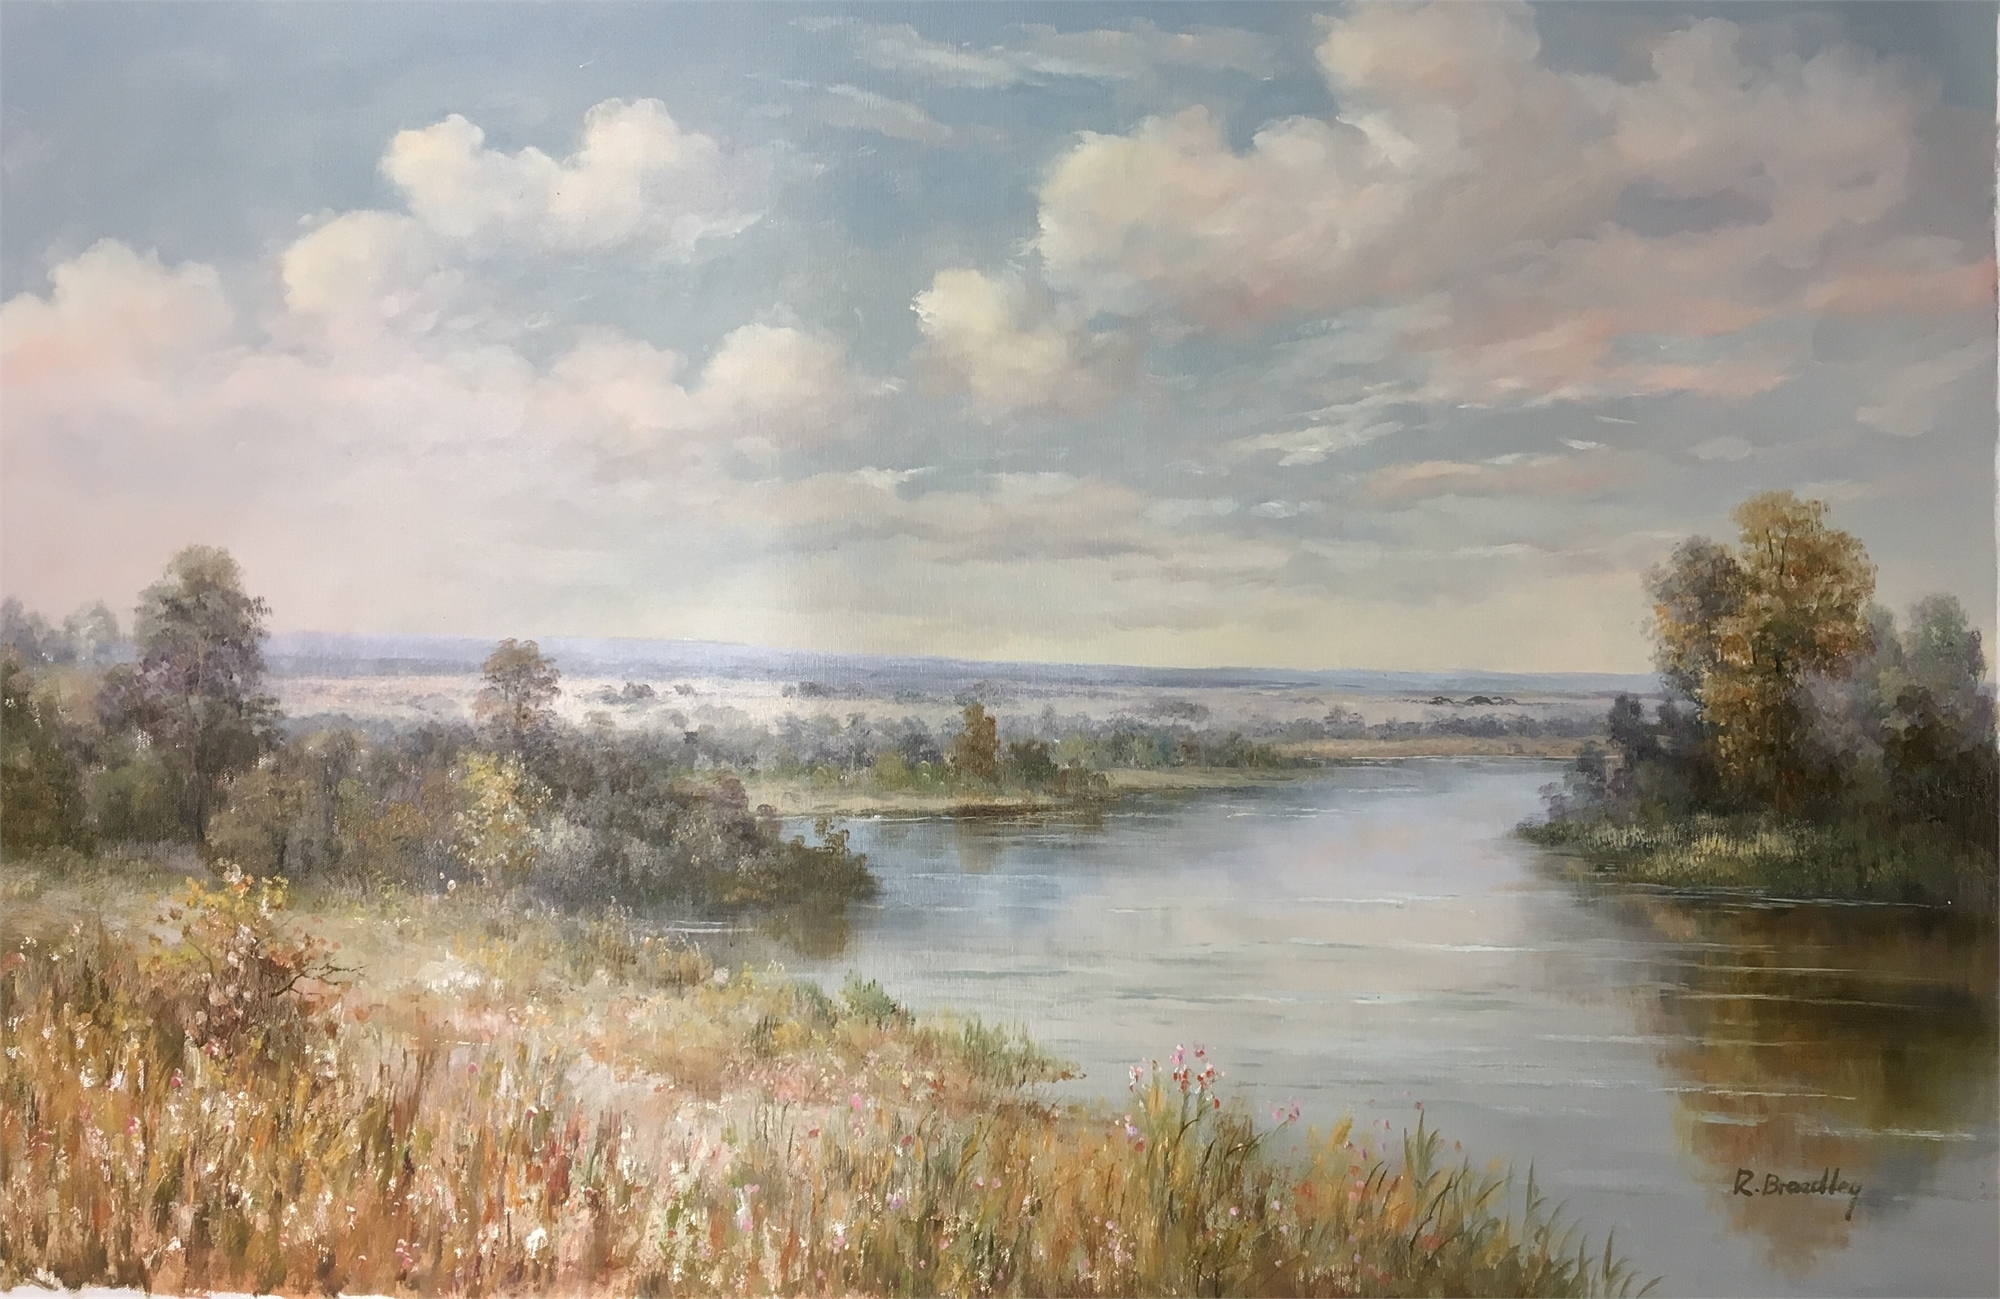 RIVERBEND IN THE VALLEY by R BRADLEY